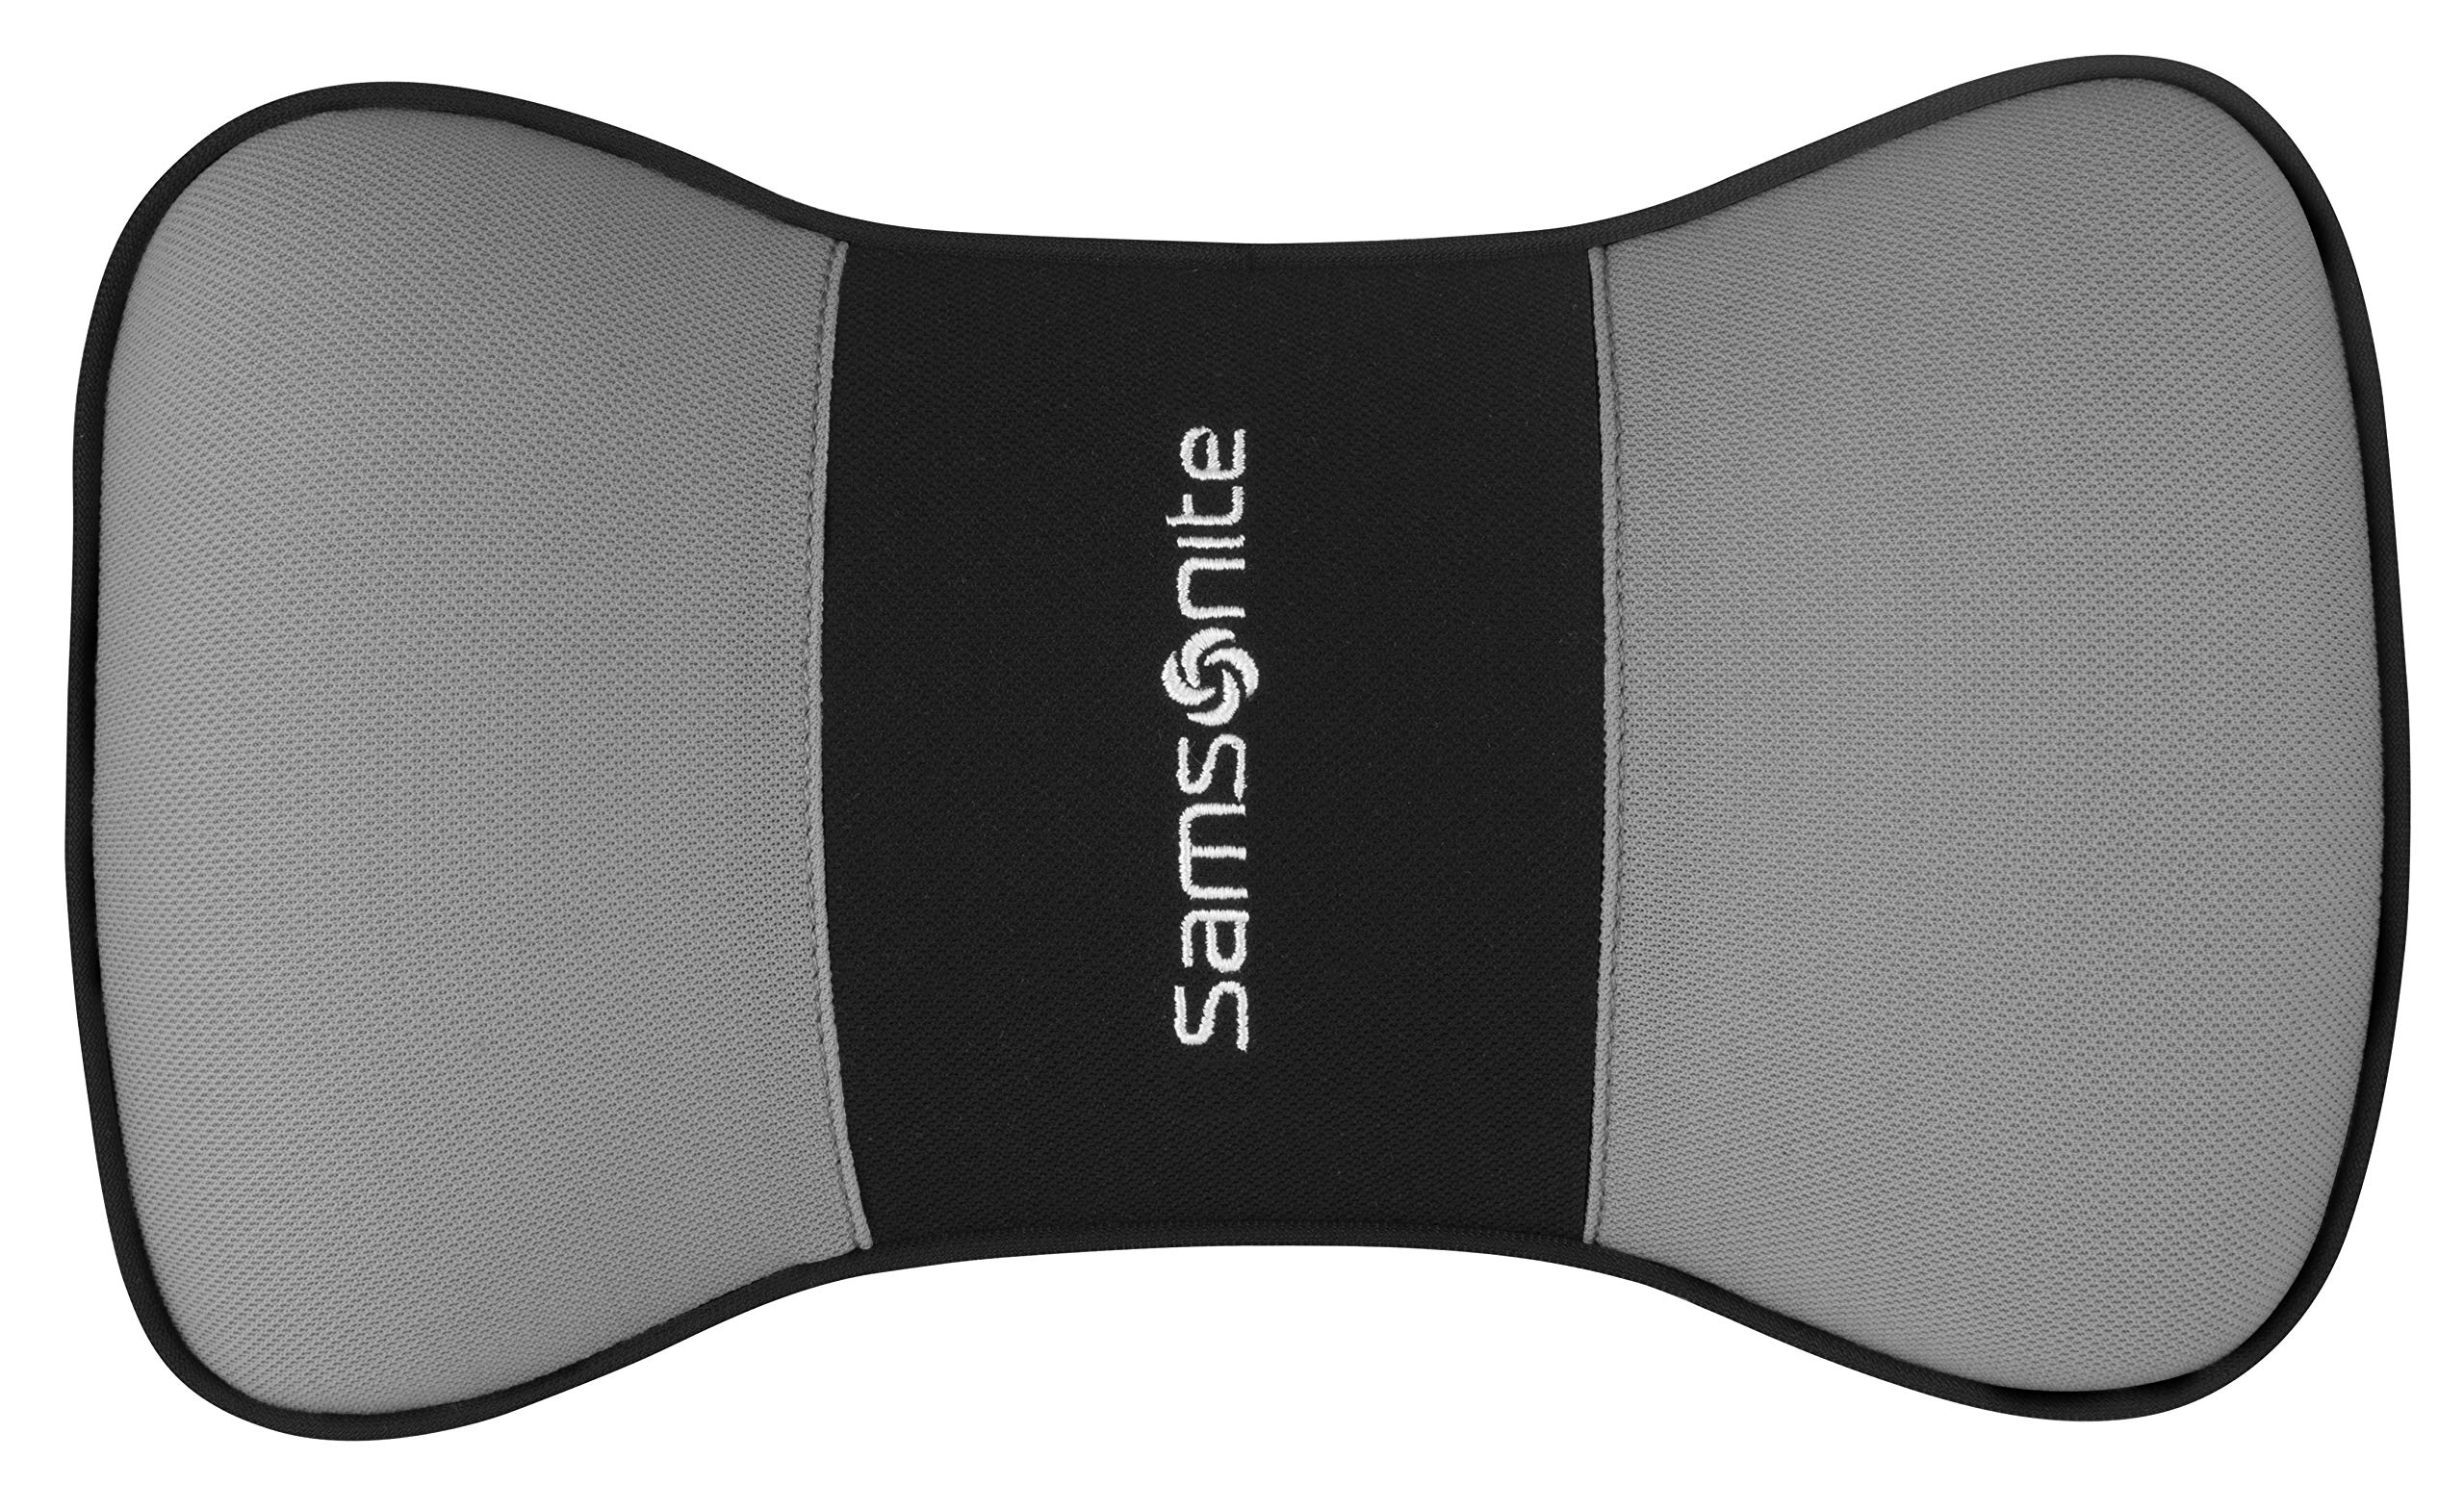 Samsonite SA5249  Travel Pillow for Car, SUV  Helps Relieve Neck Pain & Improve Circulation @% Pure Memory Foam  Fits Most Vehicles by Samsonite (Image #3)